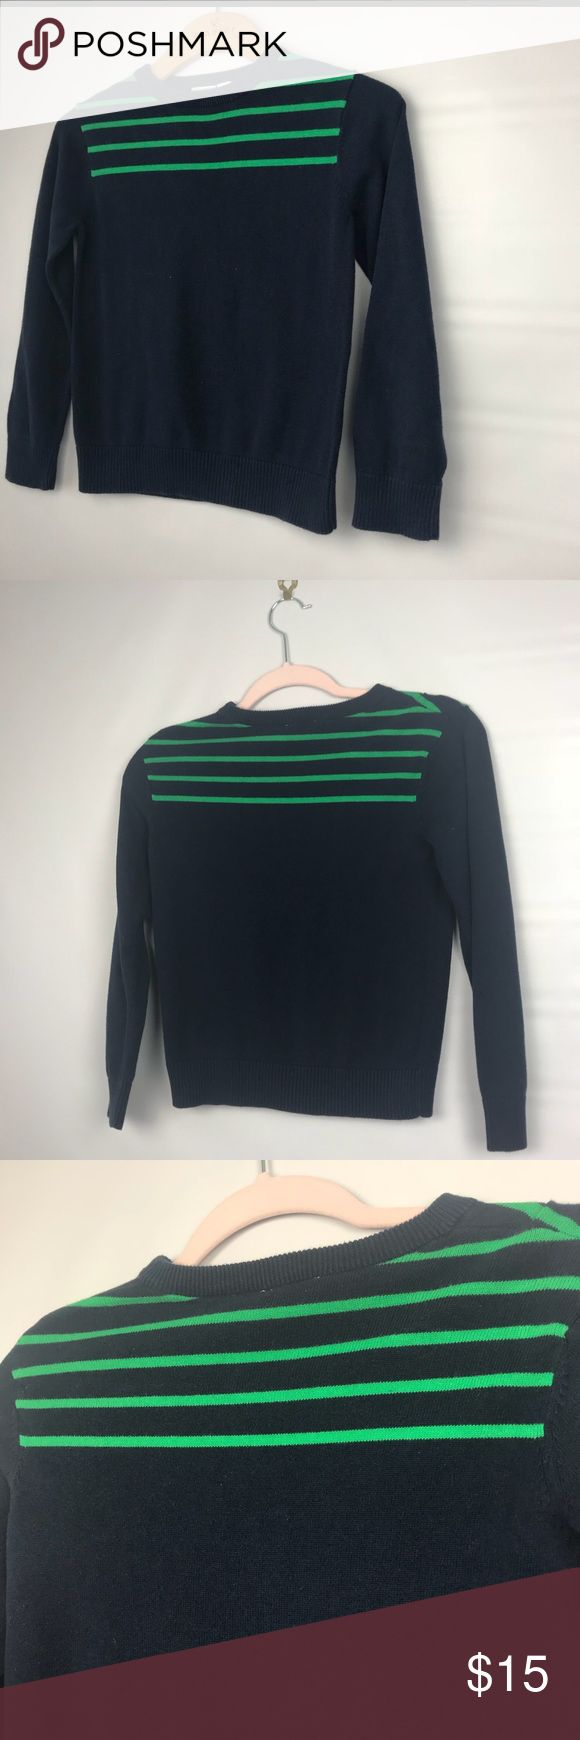 "CHILDREN'S PLACE kids dress up sweater boy size M The Children's Place classic sweater Size Medium 7/8 Sleeve is 19"" Pit to pit 15"" Length is 20"" Please note that this is a used item. Normal fade from wash and wear.  #X The Children's Place Shirts & Tops Sweaters"